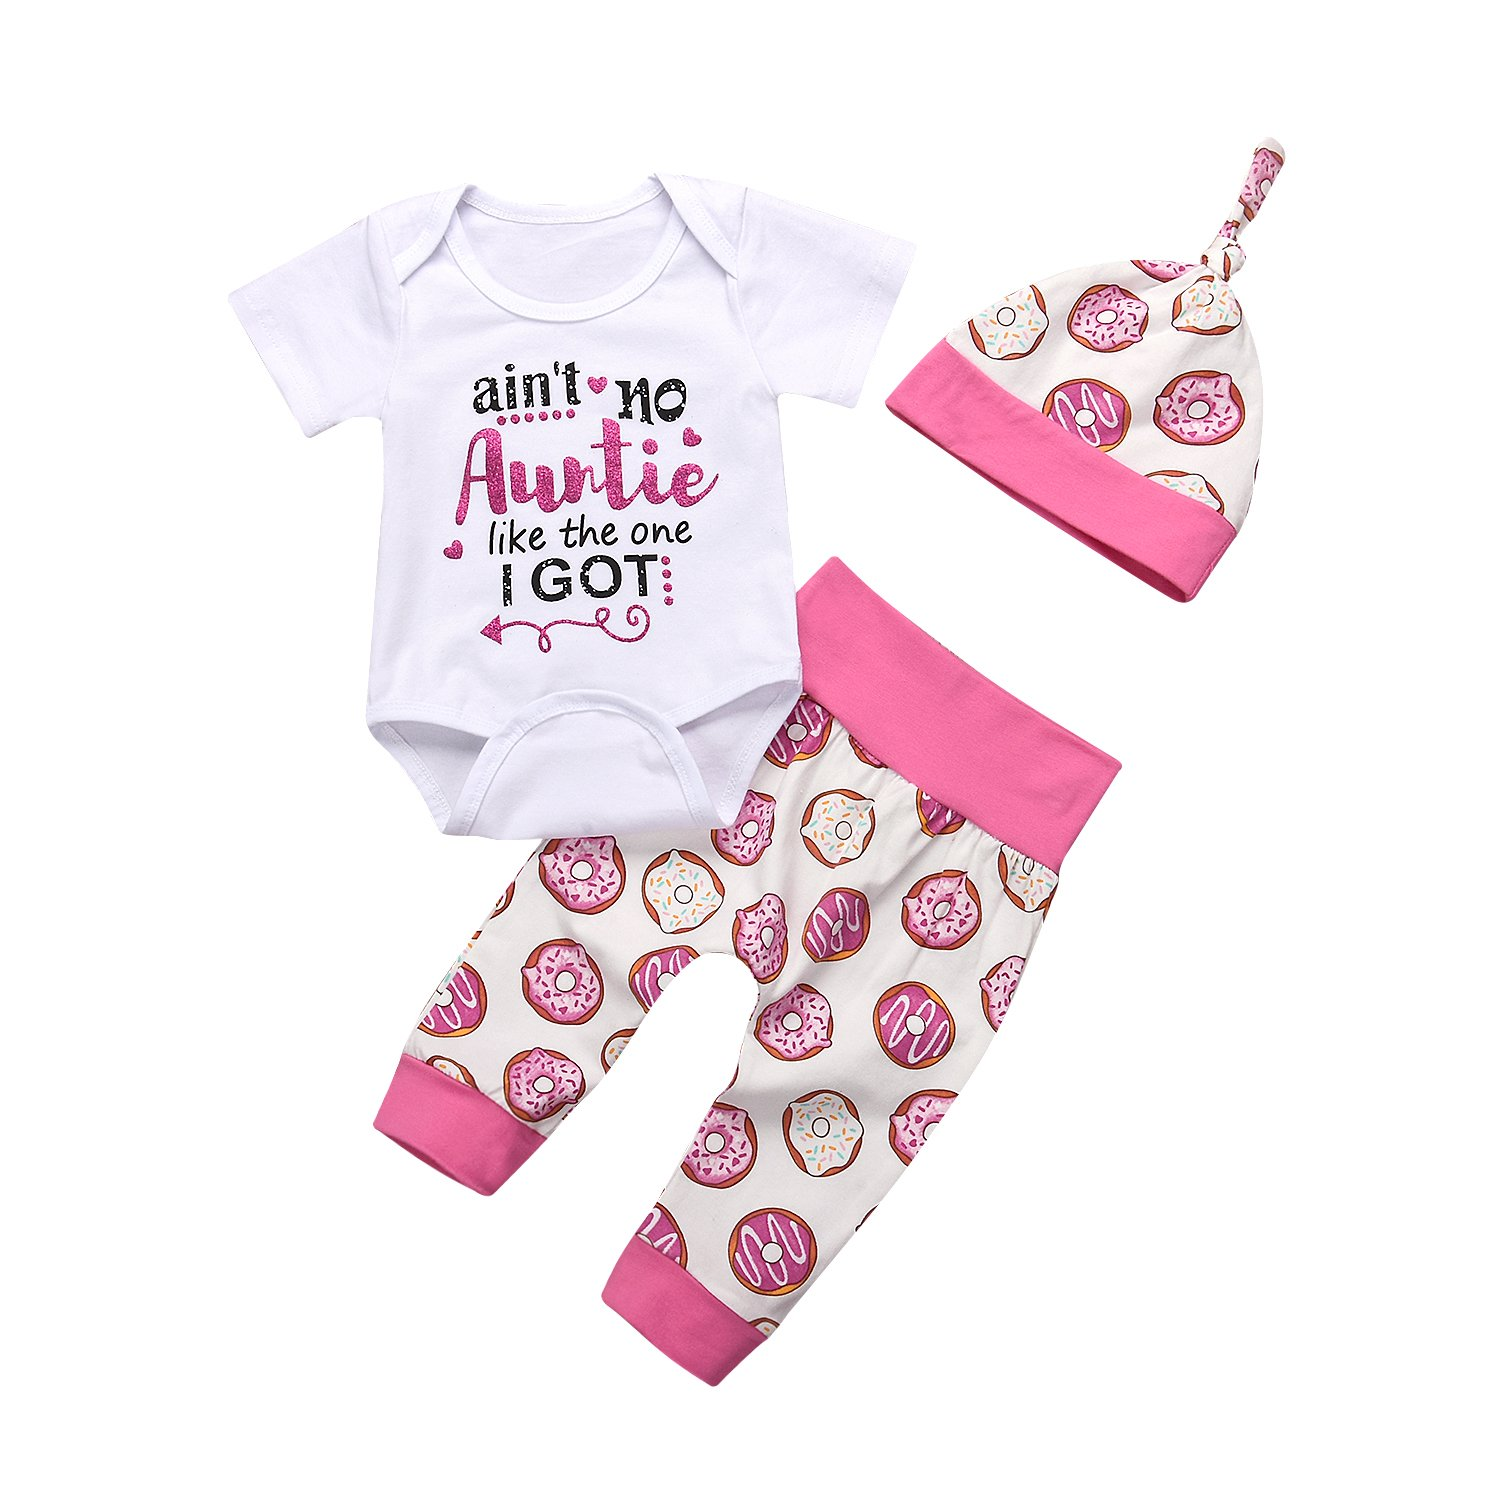 Misbeky 3Pcs//Set Newborn Baby Girl Summer Outfit Auntie Bodysuit Romper with Headband+Donuts Long Pants Clothes